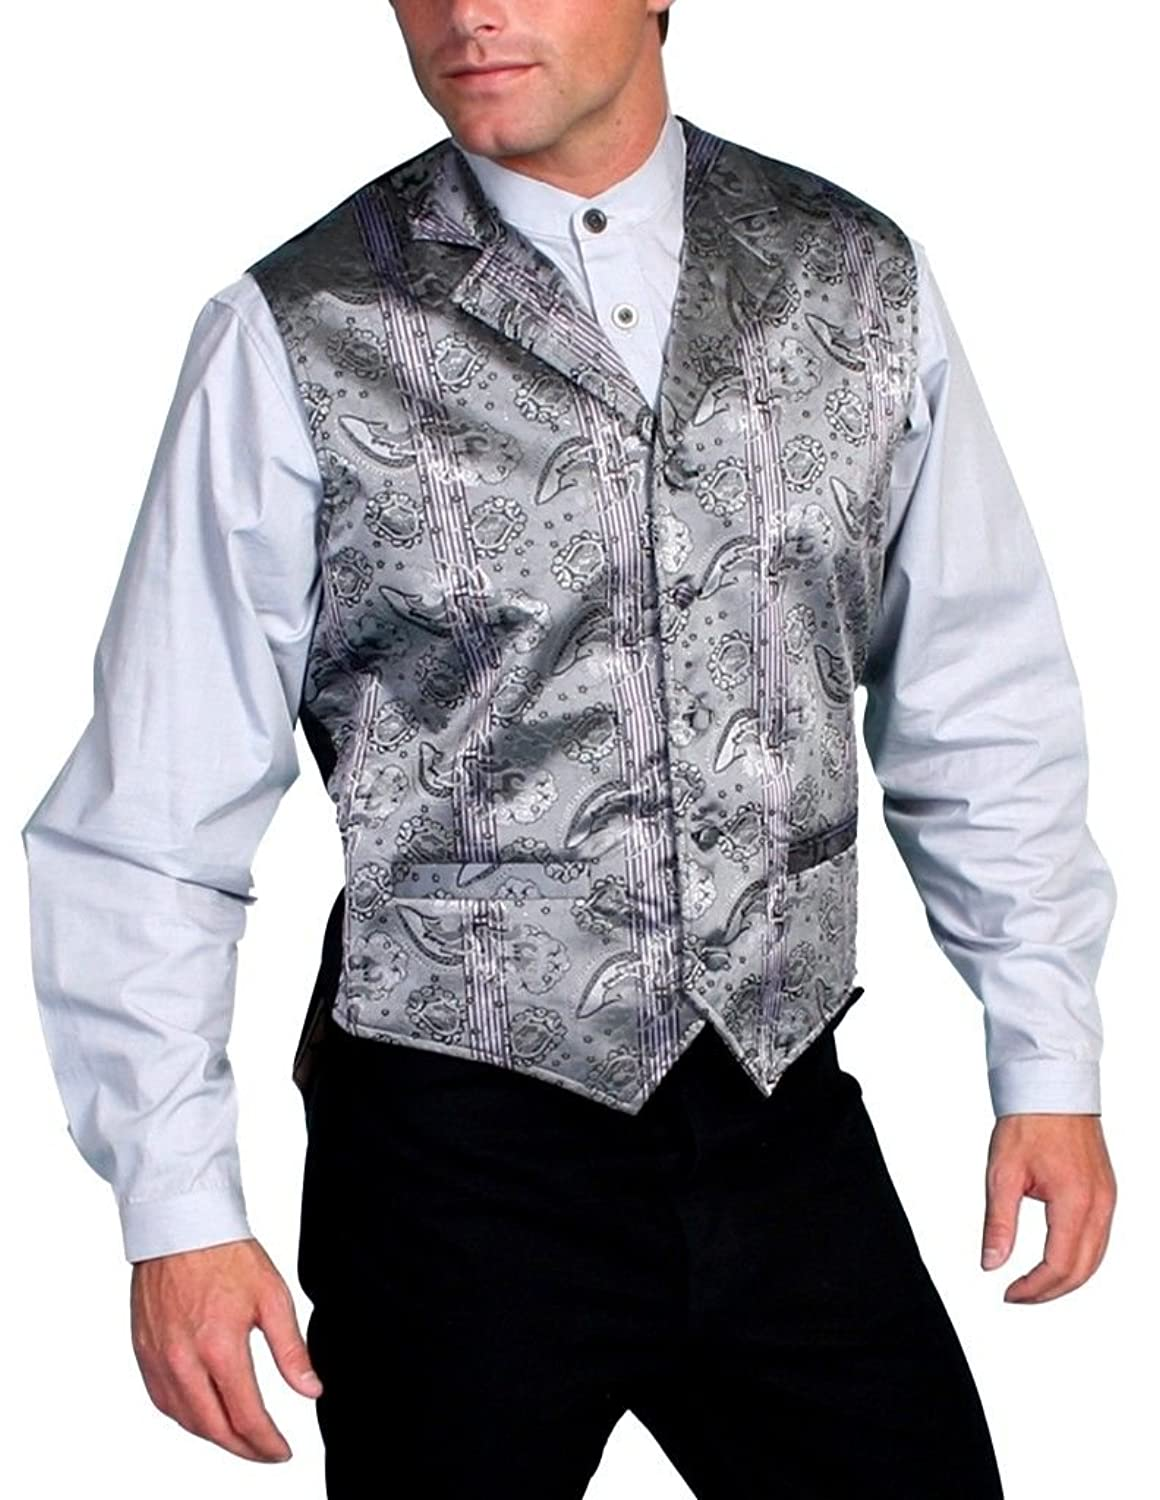 Men's Vintage Inspired Vests  Rangewear Claymont Vest Big And Tall - Rw114x Gry $55.05 AT vintagedancer.com